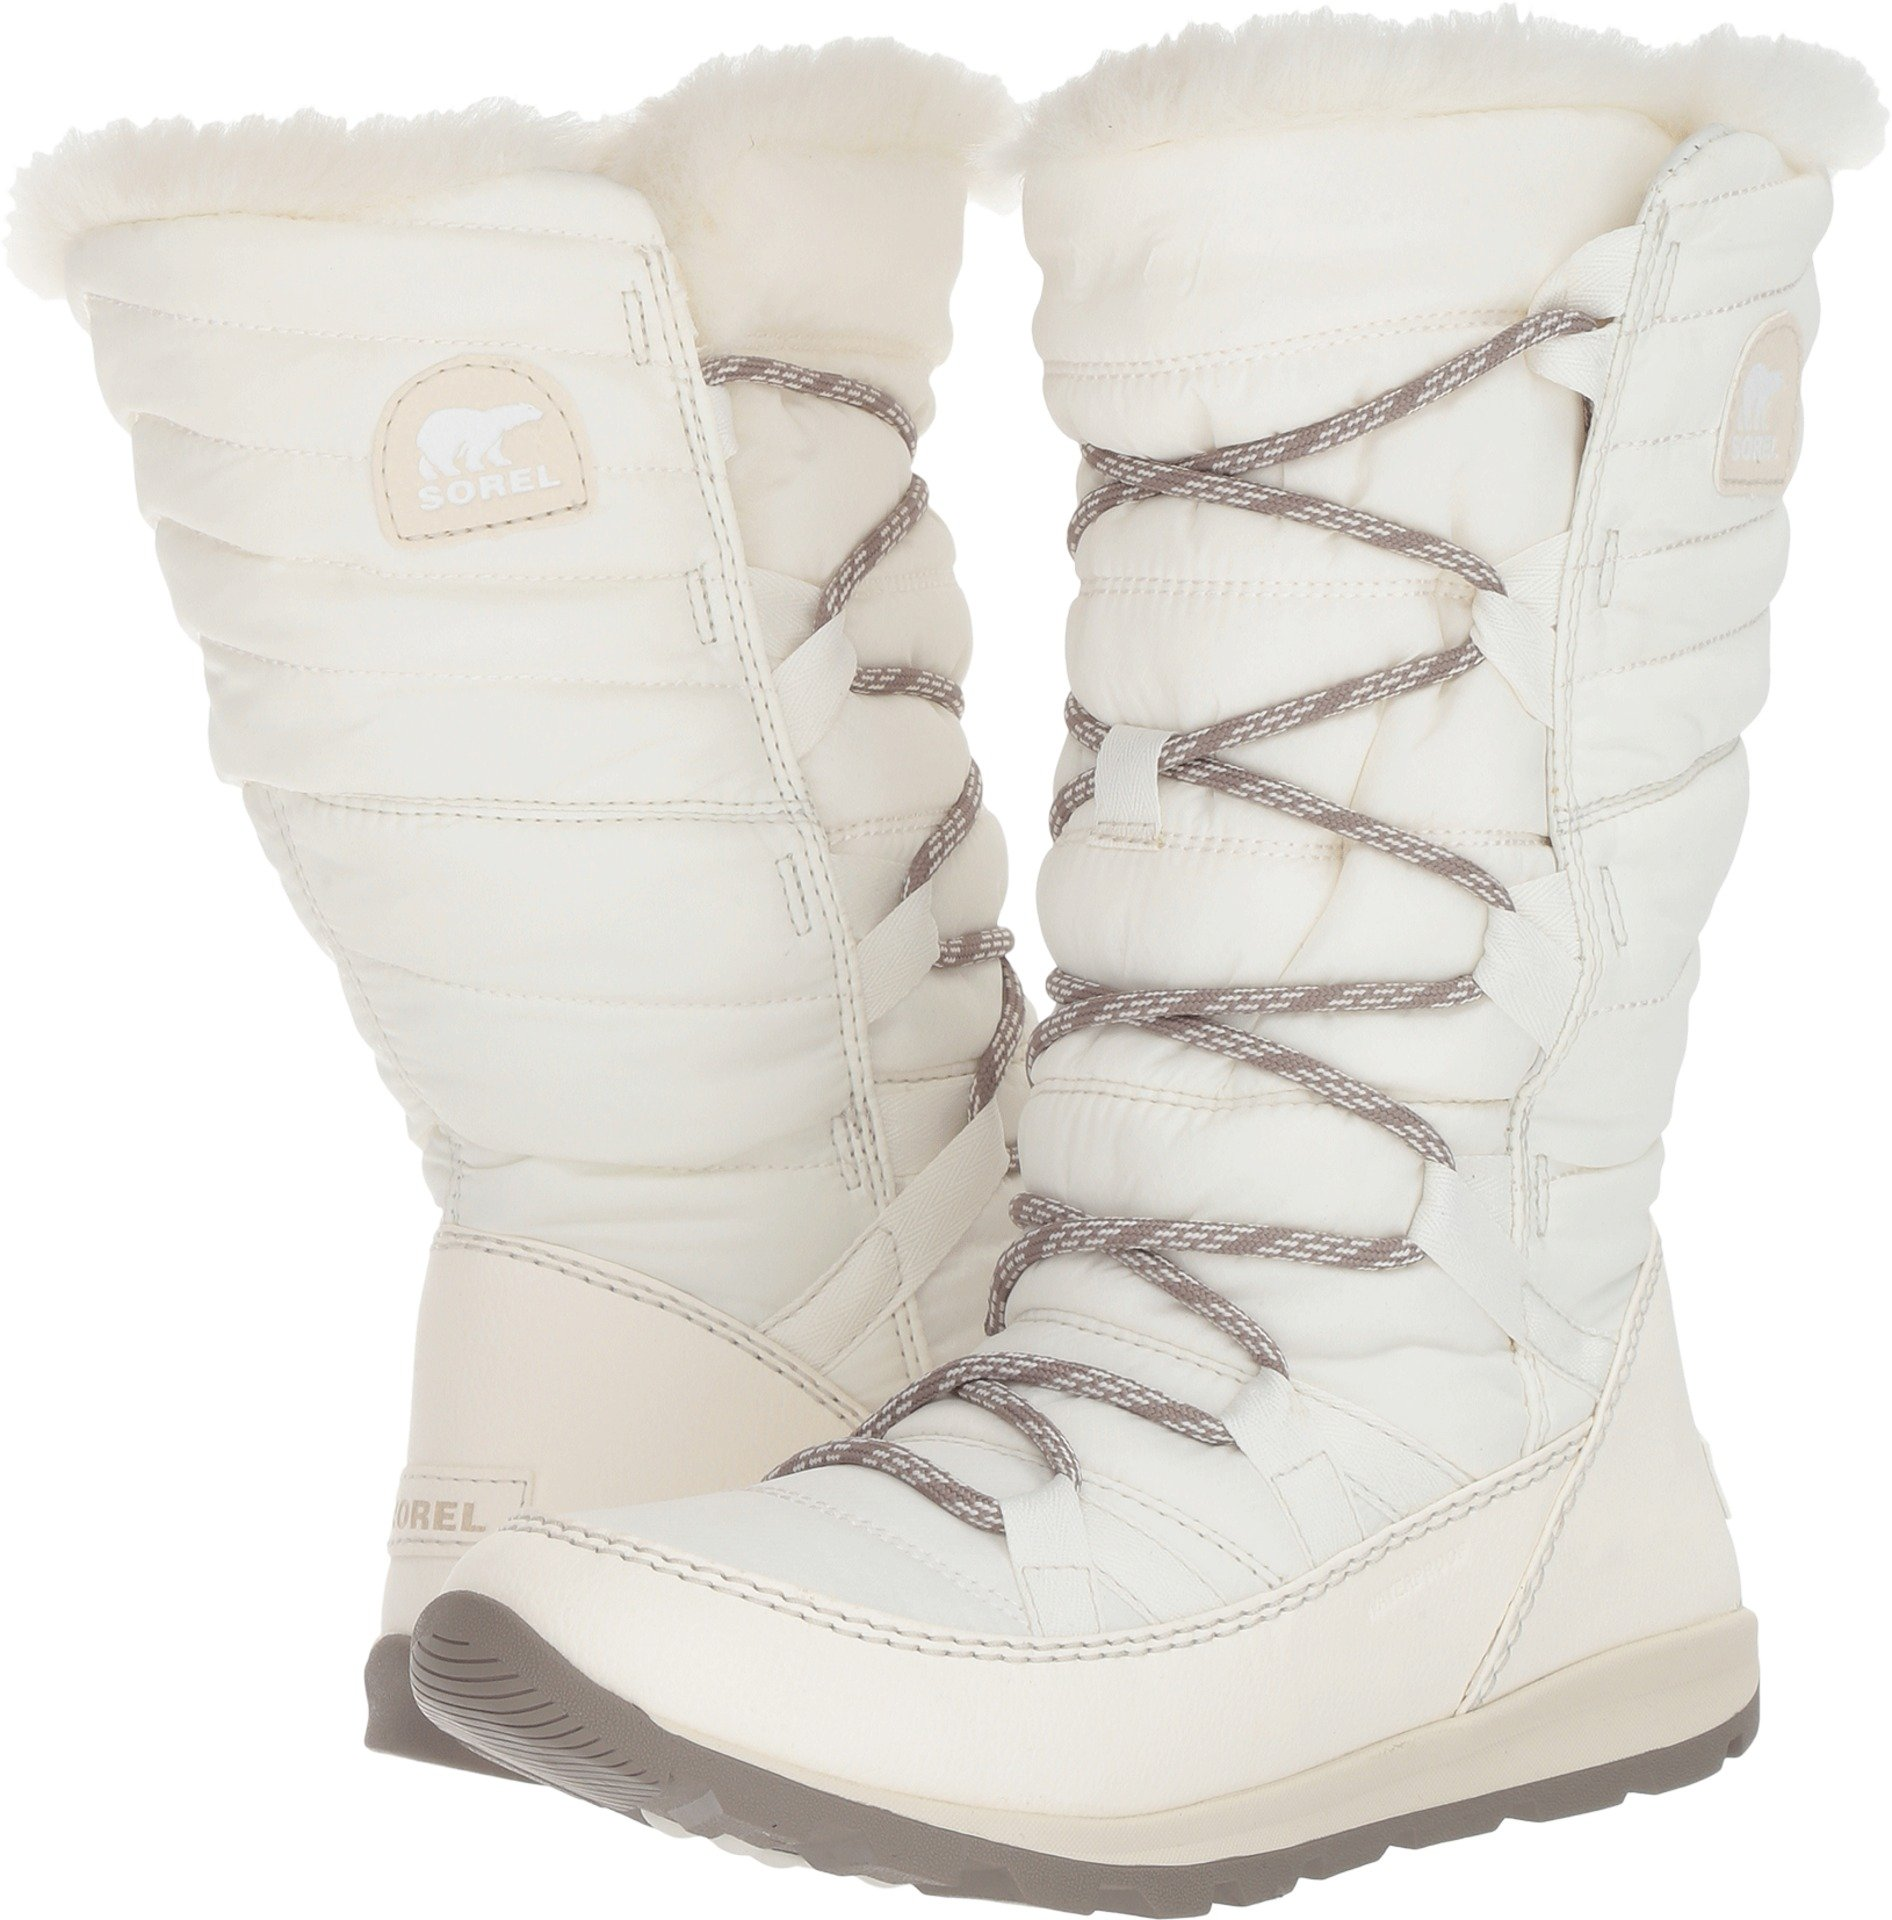 Sorel Women's Whitney Lace Waterproof Winter Boot Sea Salt 8 M US by SOREL